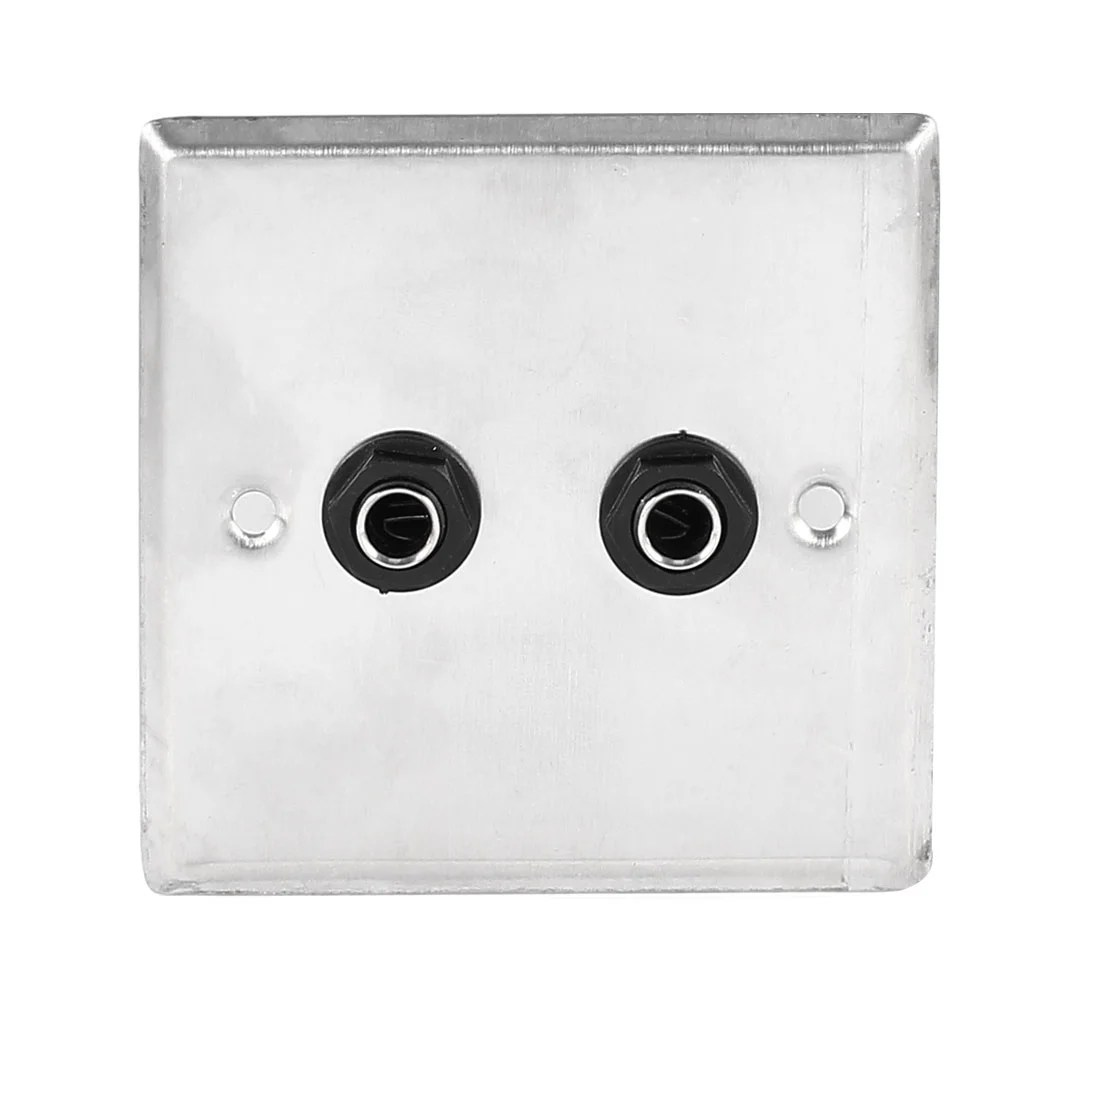 hight resolution of shop unique bargains speaker dual black solder 6 35mm 1 4 socket metal wall plate panel 85x85mm on sale free shipping on orders over 45 overstock